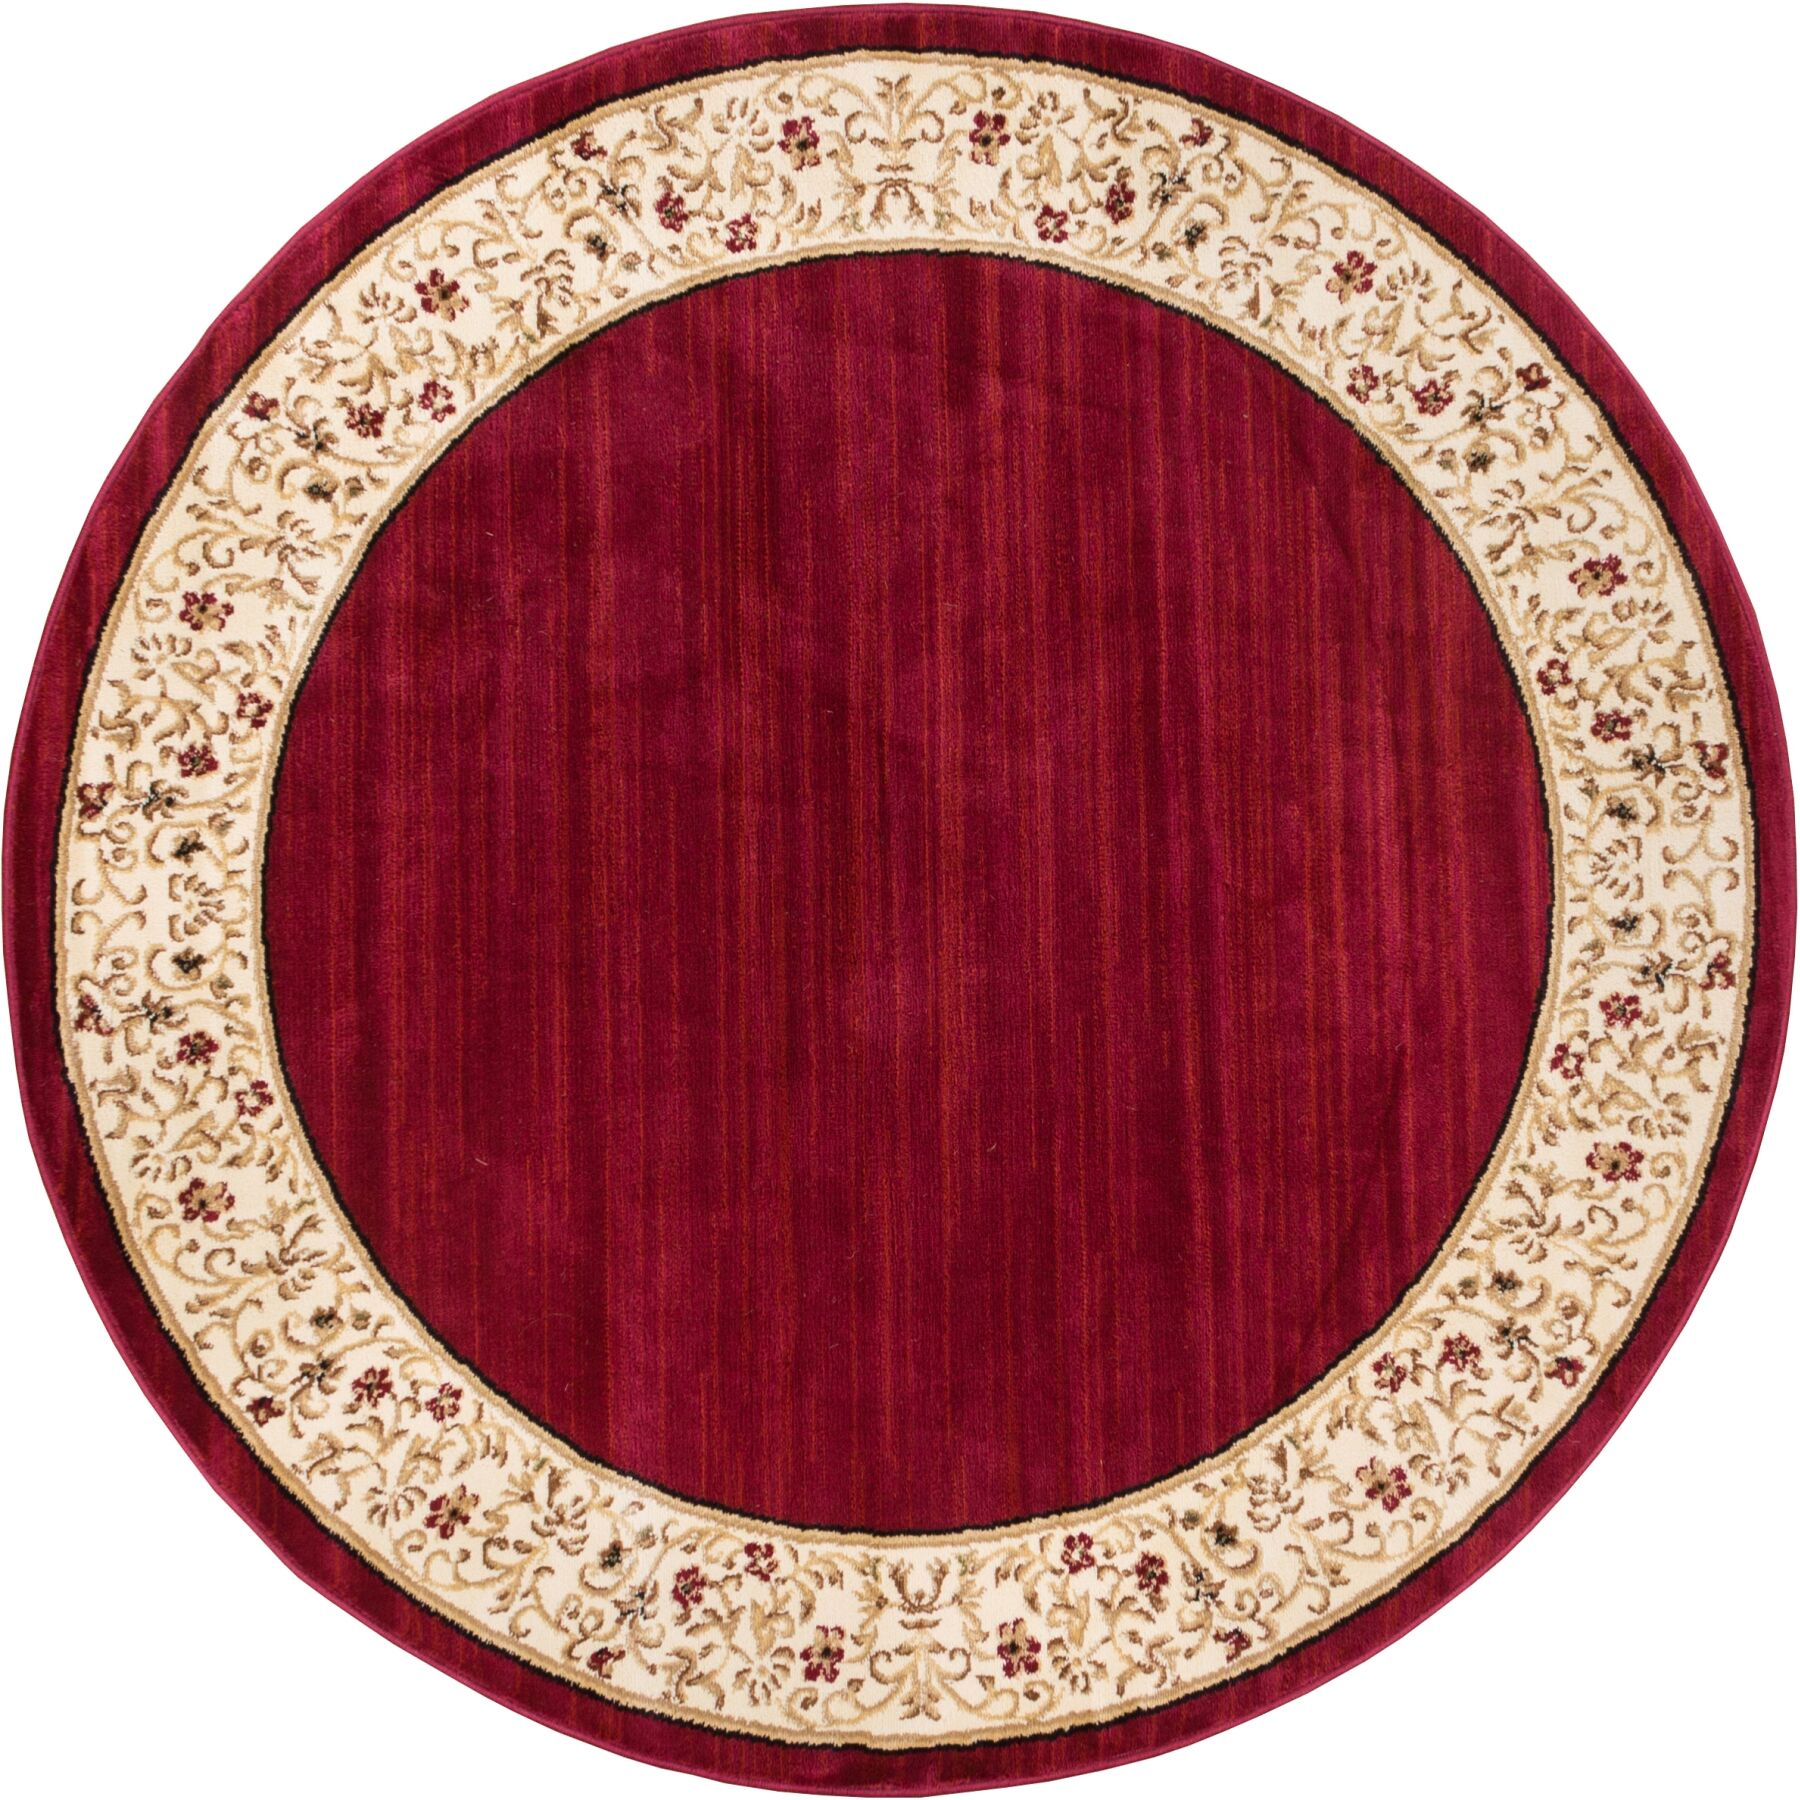 Dorothea Red Wine Floral Border Area Rug Rug Size: Round 5'3